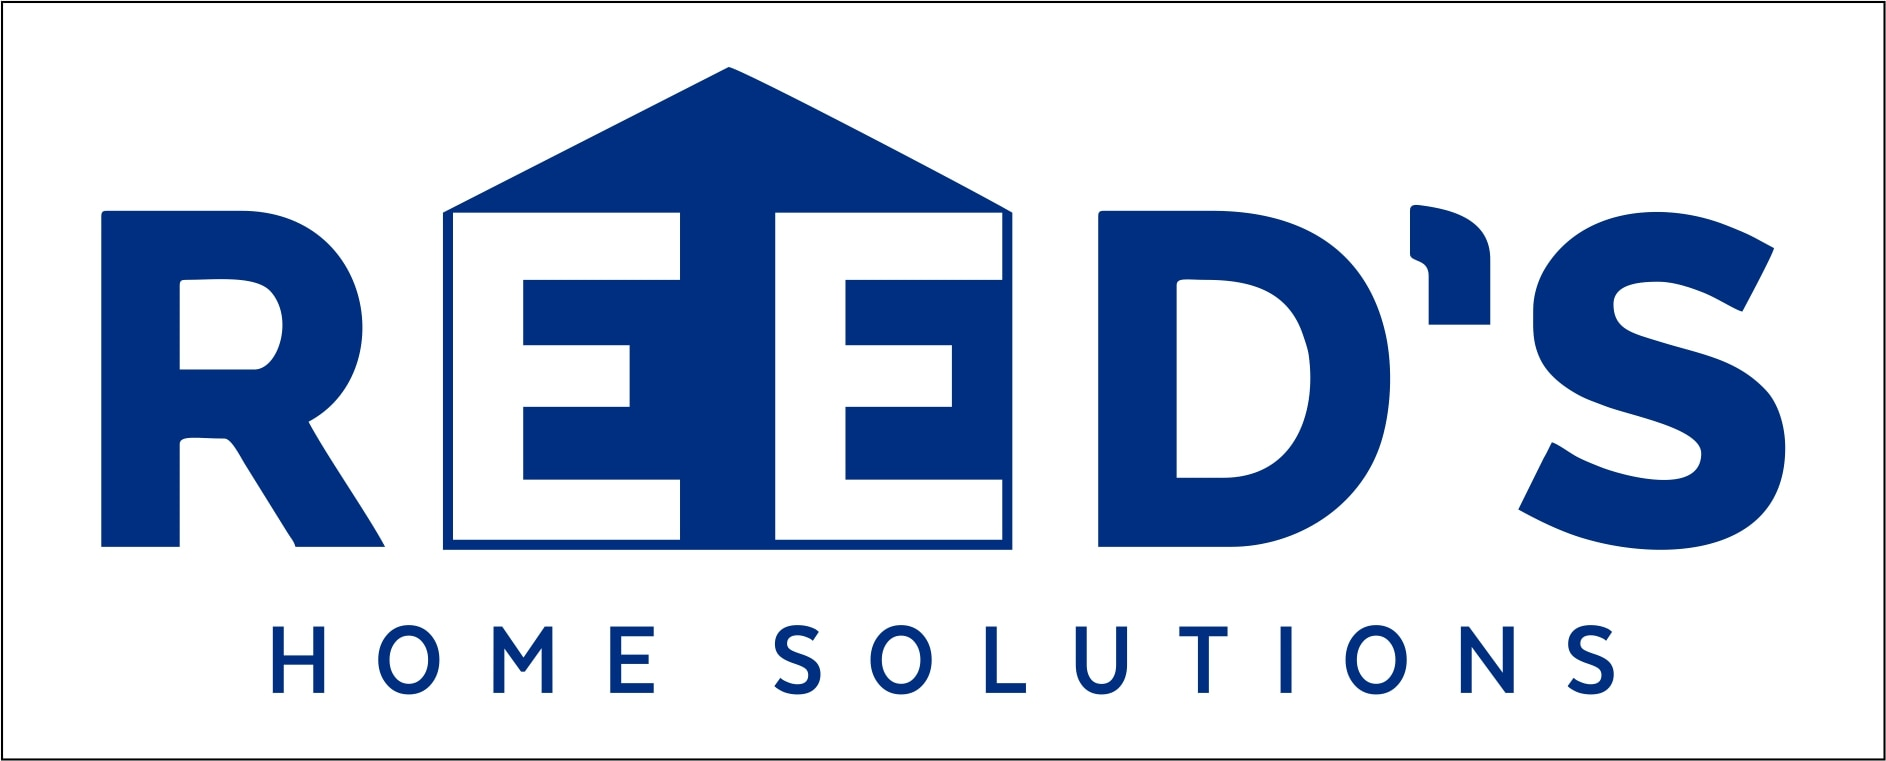 Reed's Home Solutions logo